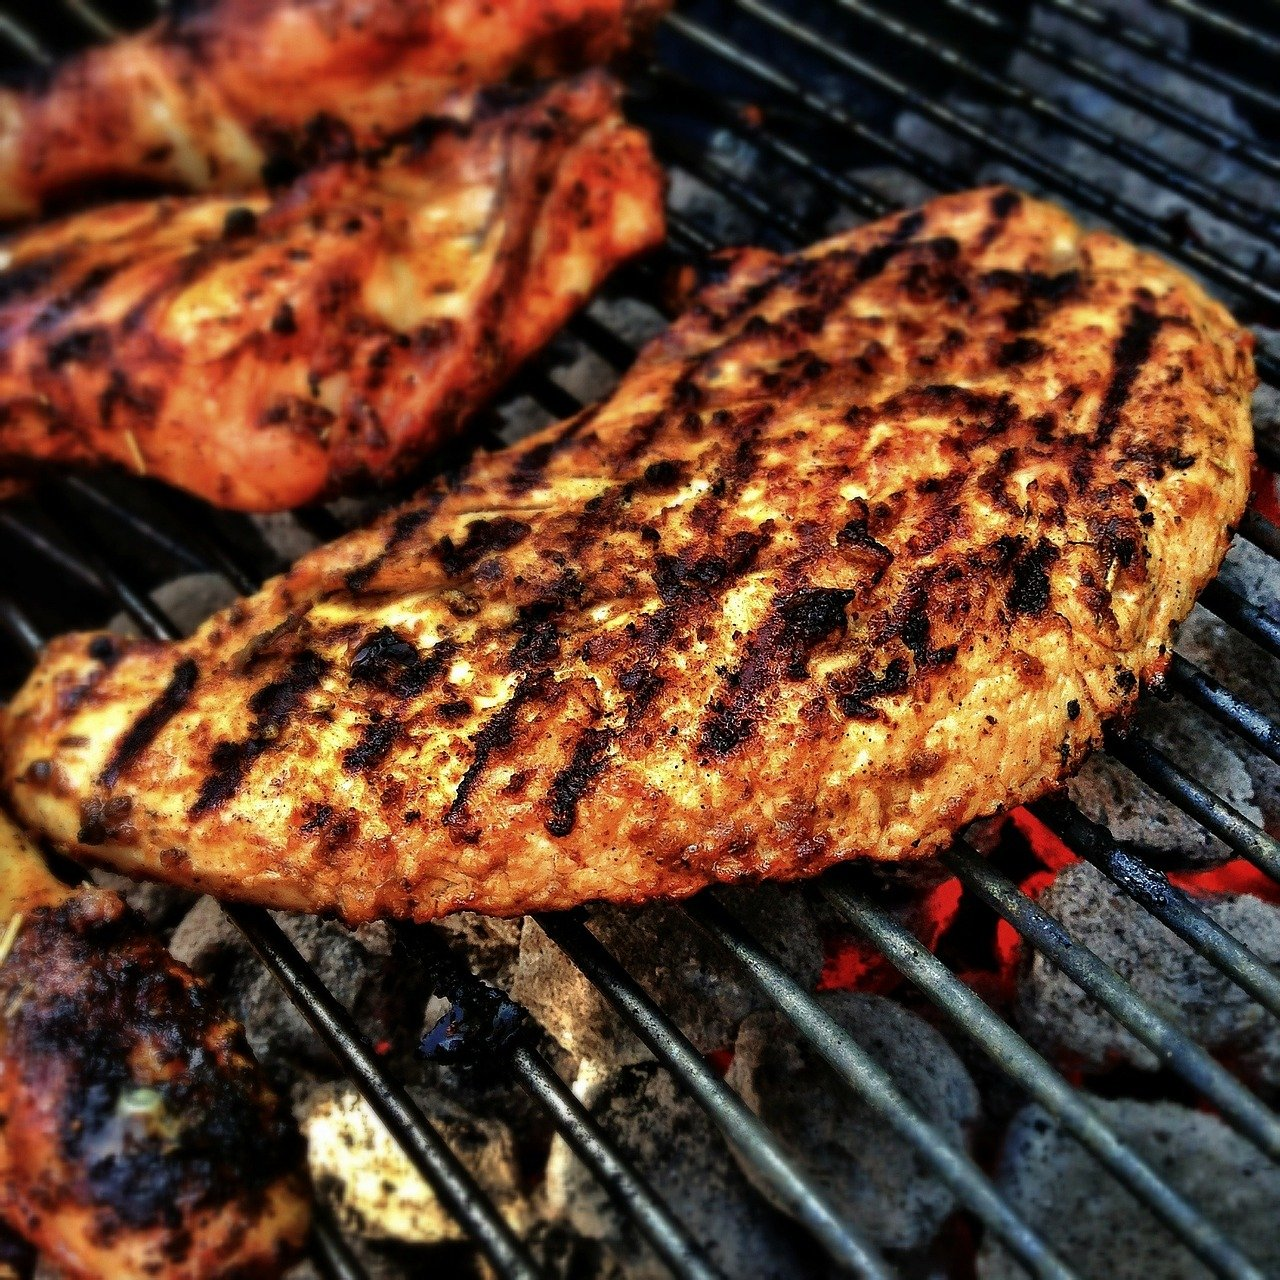 How to grill chicken breasts